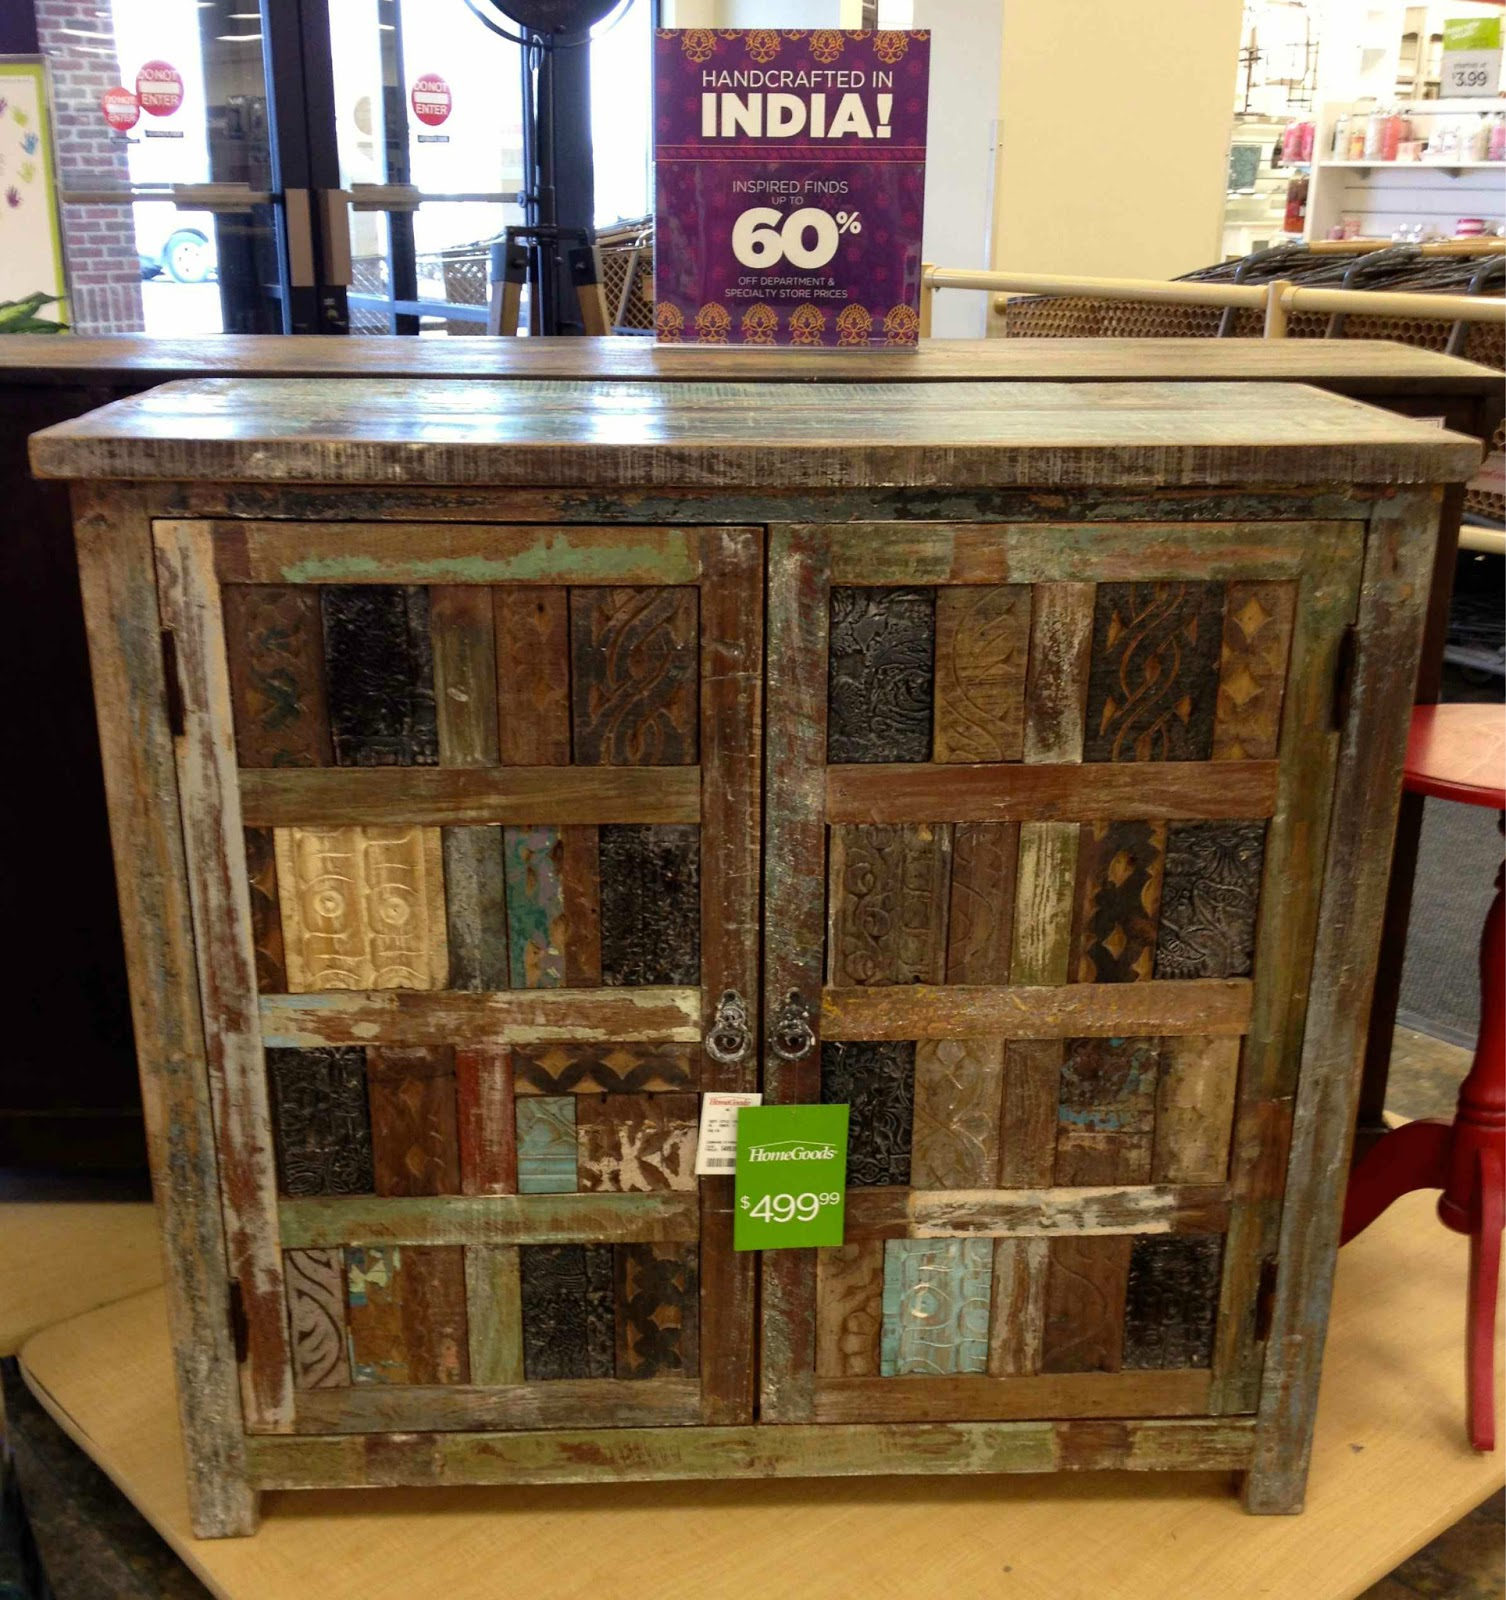 Inspiration India at HomeGoods Driven by Decor